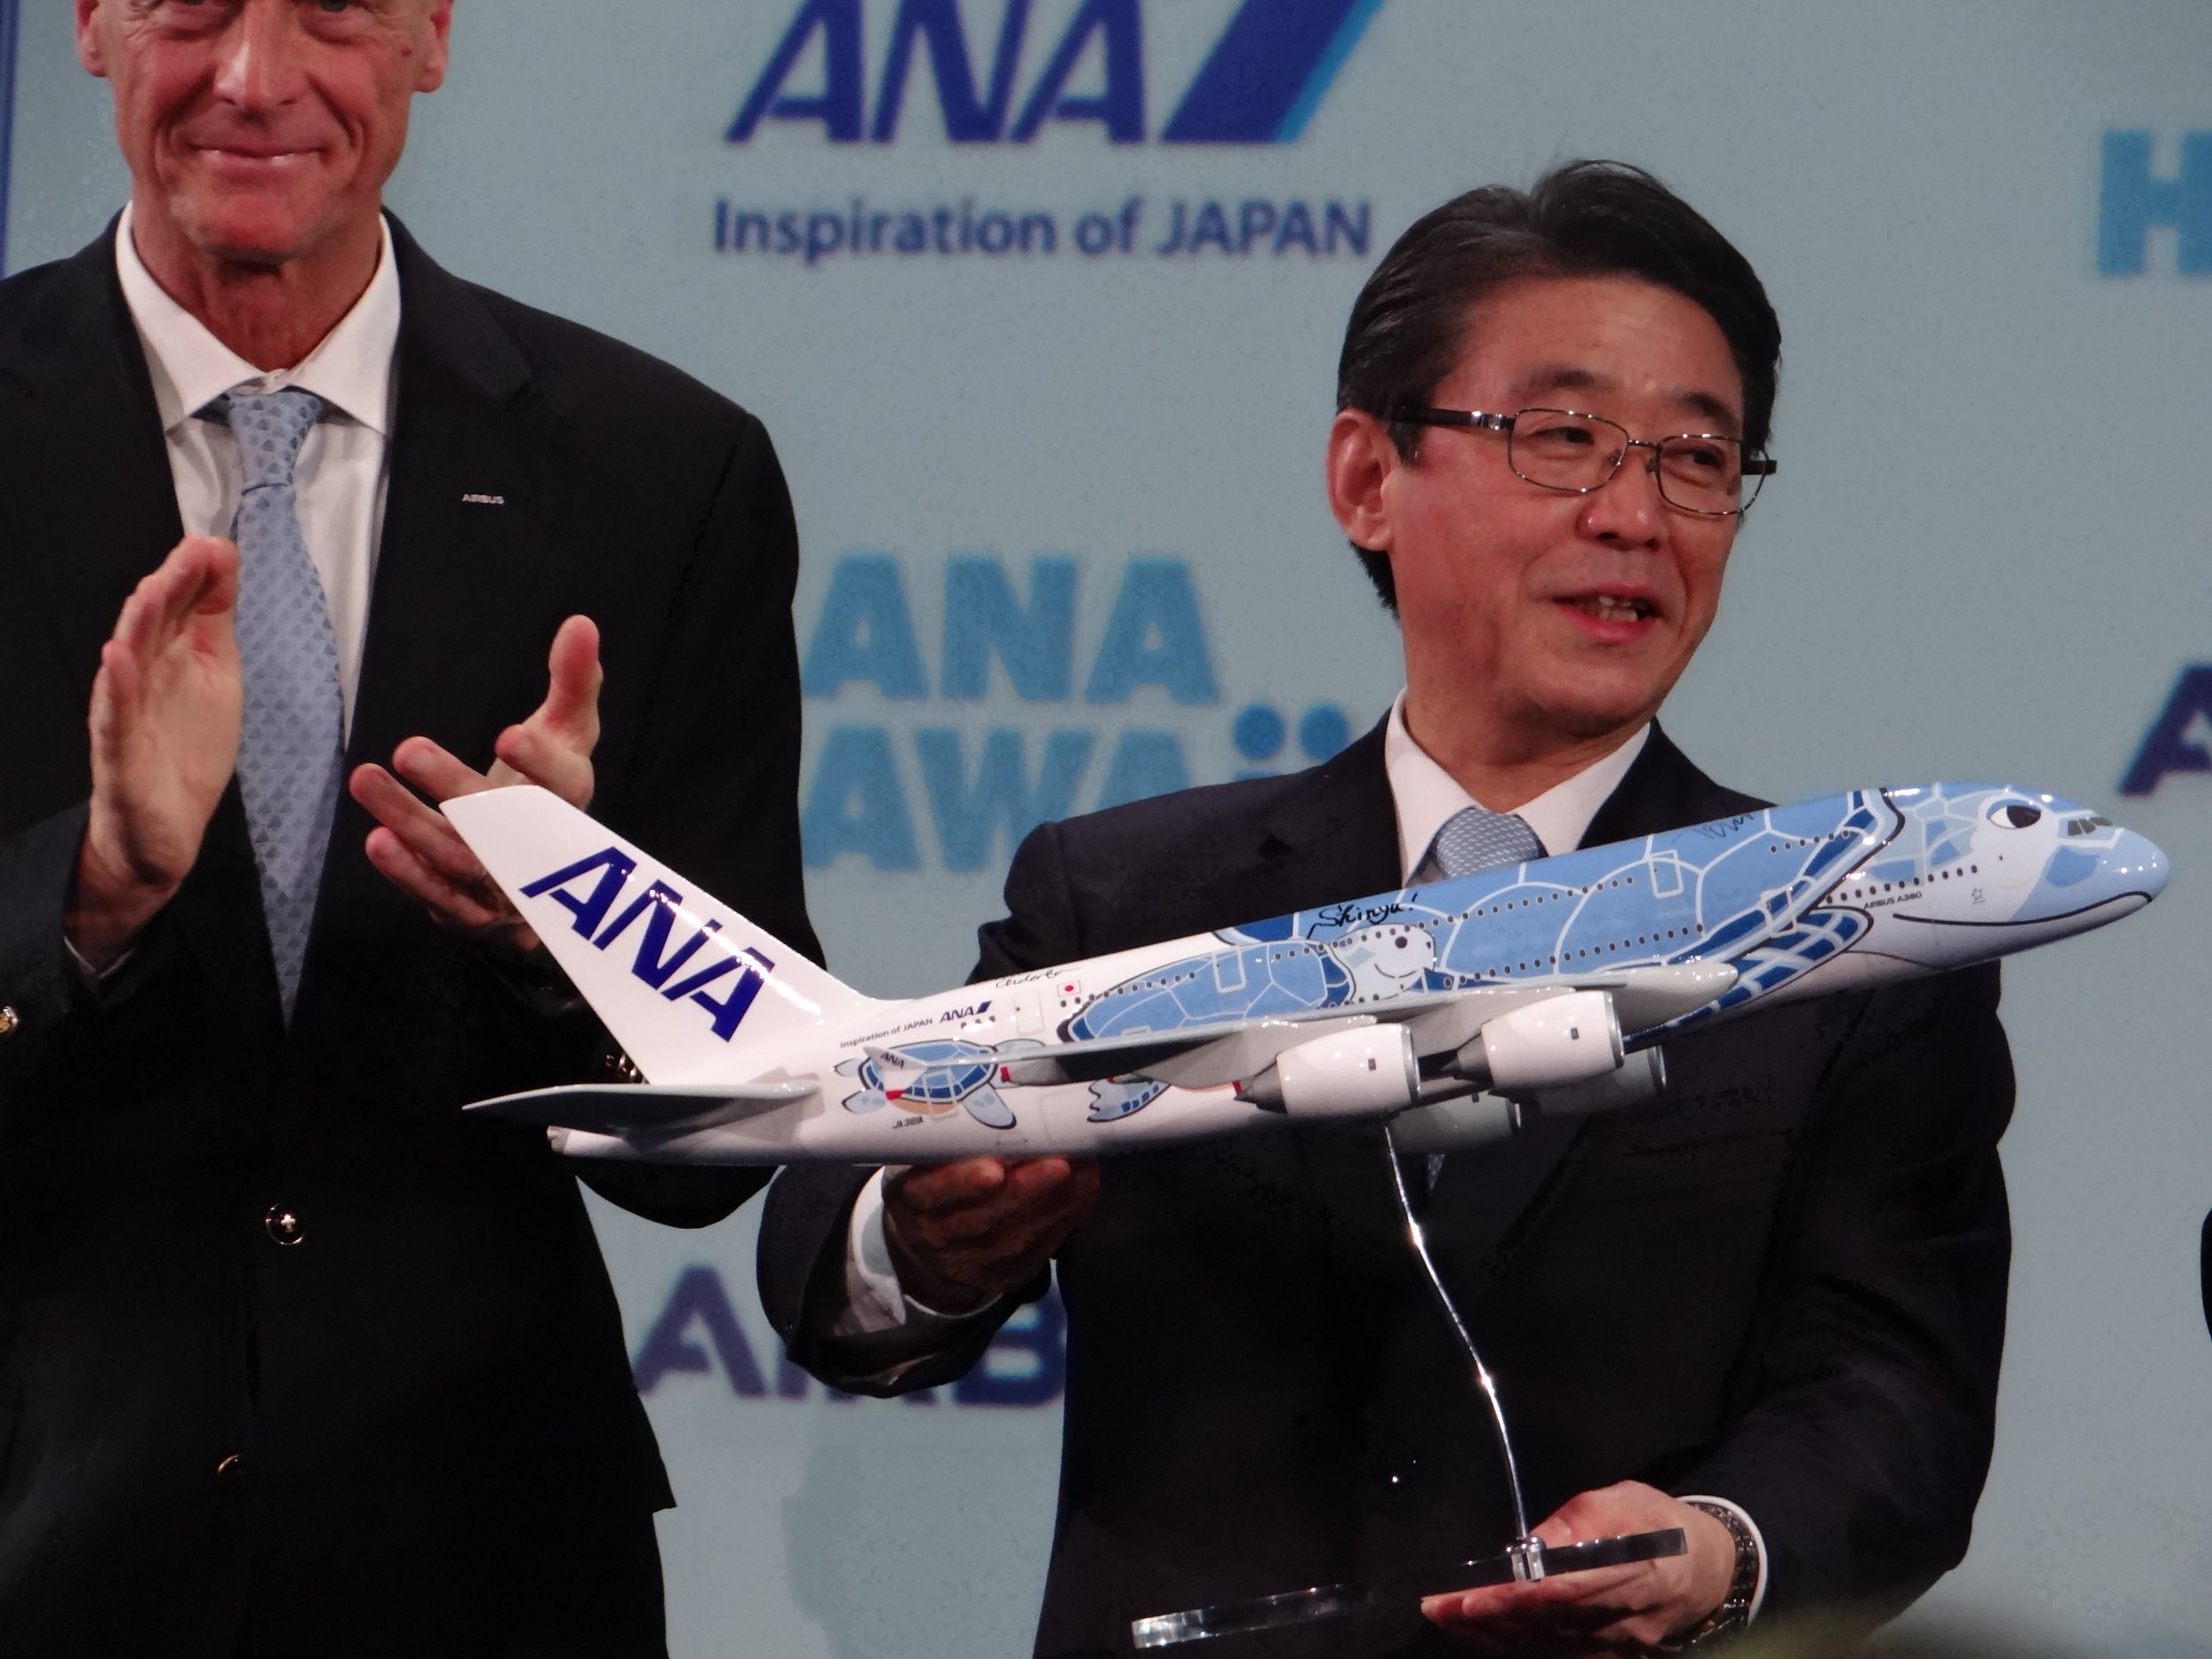 ANA Holdings Chairman, Shinya Katanozaka, with the Flying Honu scale model